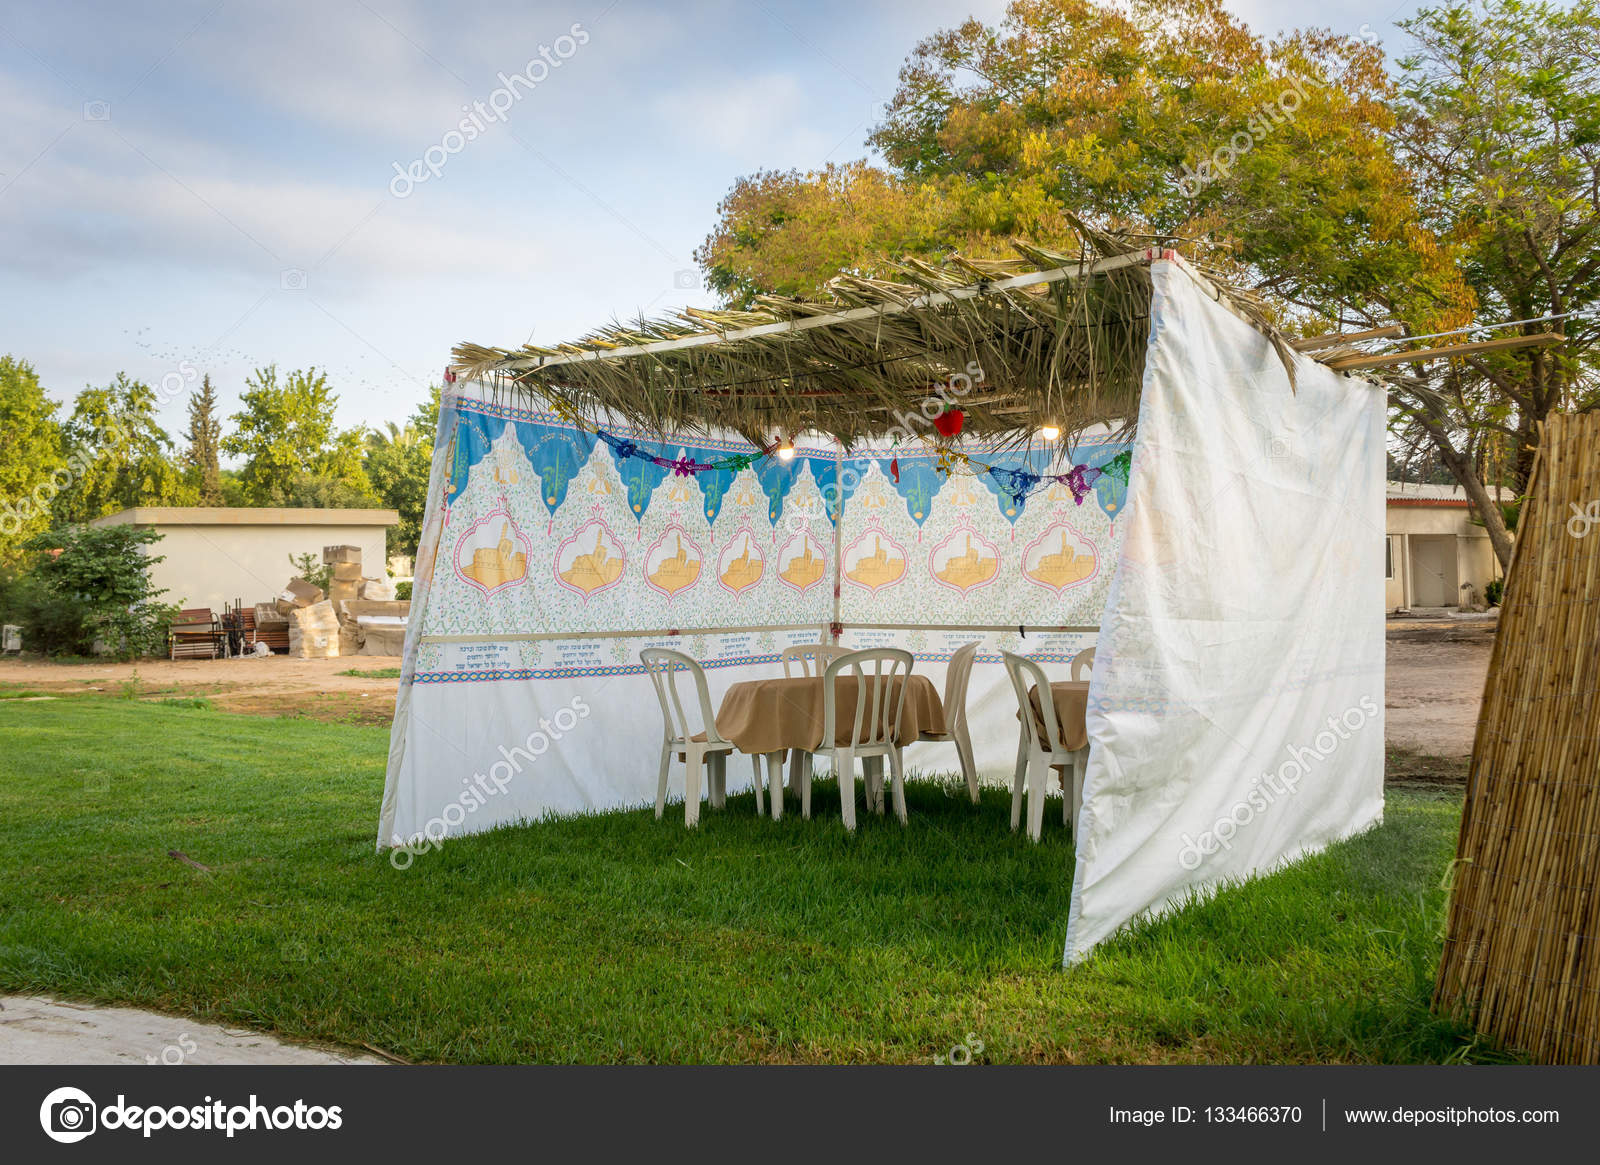 Sukkah - symbolic temporary hut for celebration of Jewish Holiday Sukkot u2014 Stock Photo & Sukkah - symbolic temporary hut for celebration of Jewish Holiday ...